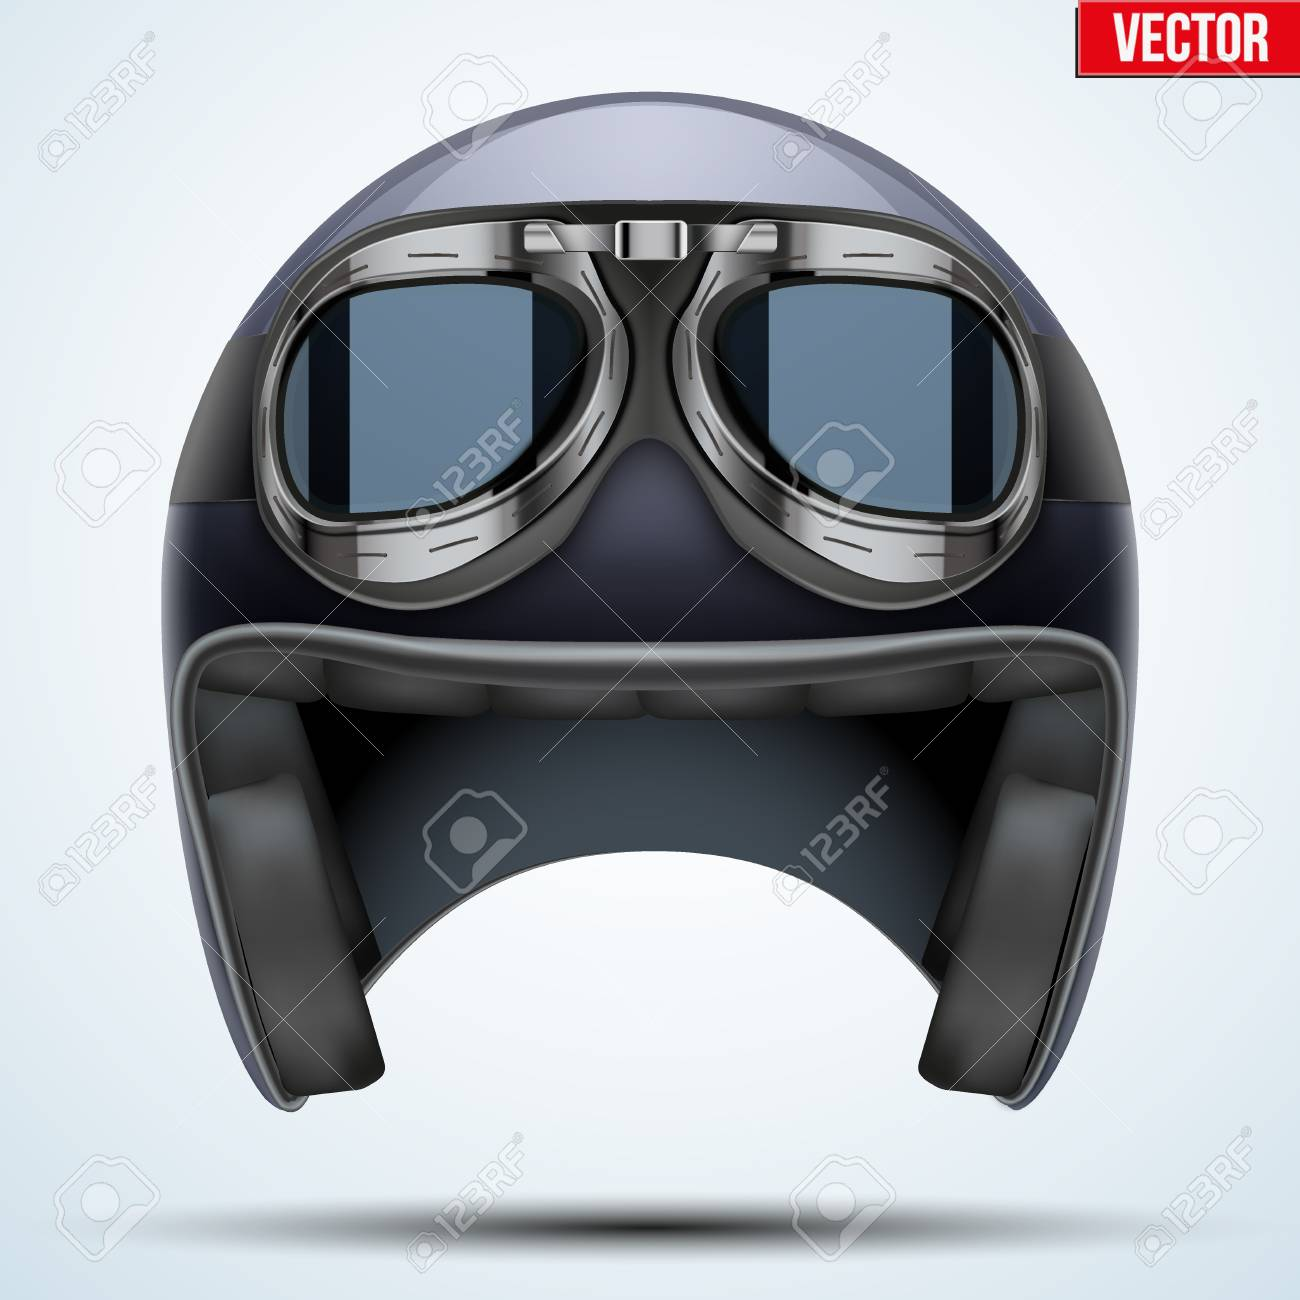 702e4cae65 Vector - Vintage motorcycle classic helmet with goggles. Black color.  Transportation industry. Vector illustration isolated on background